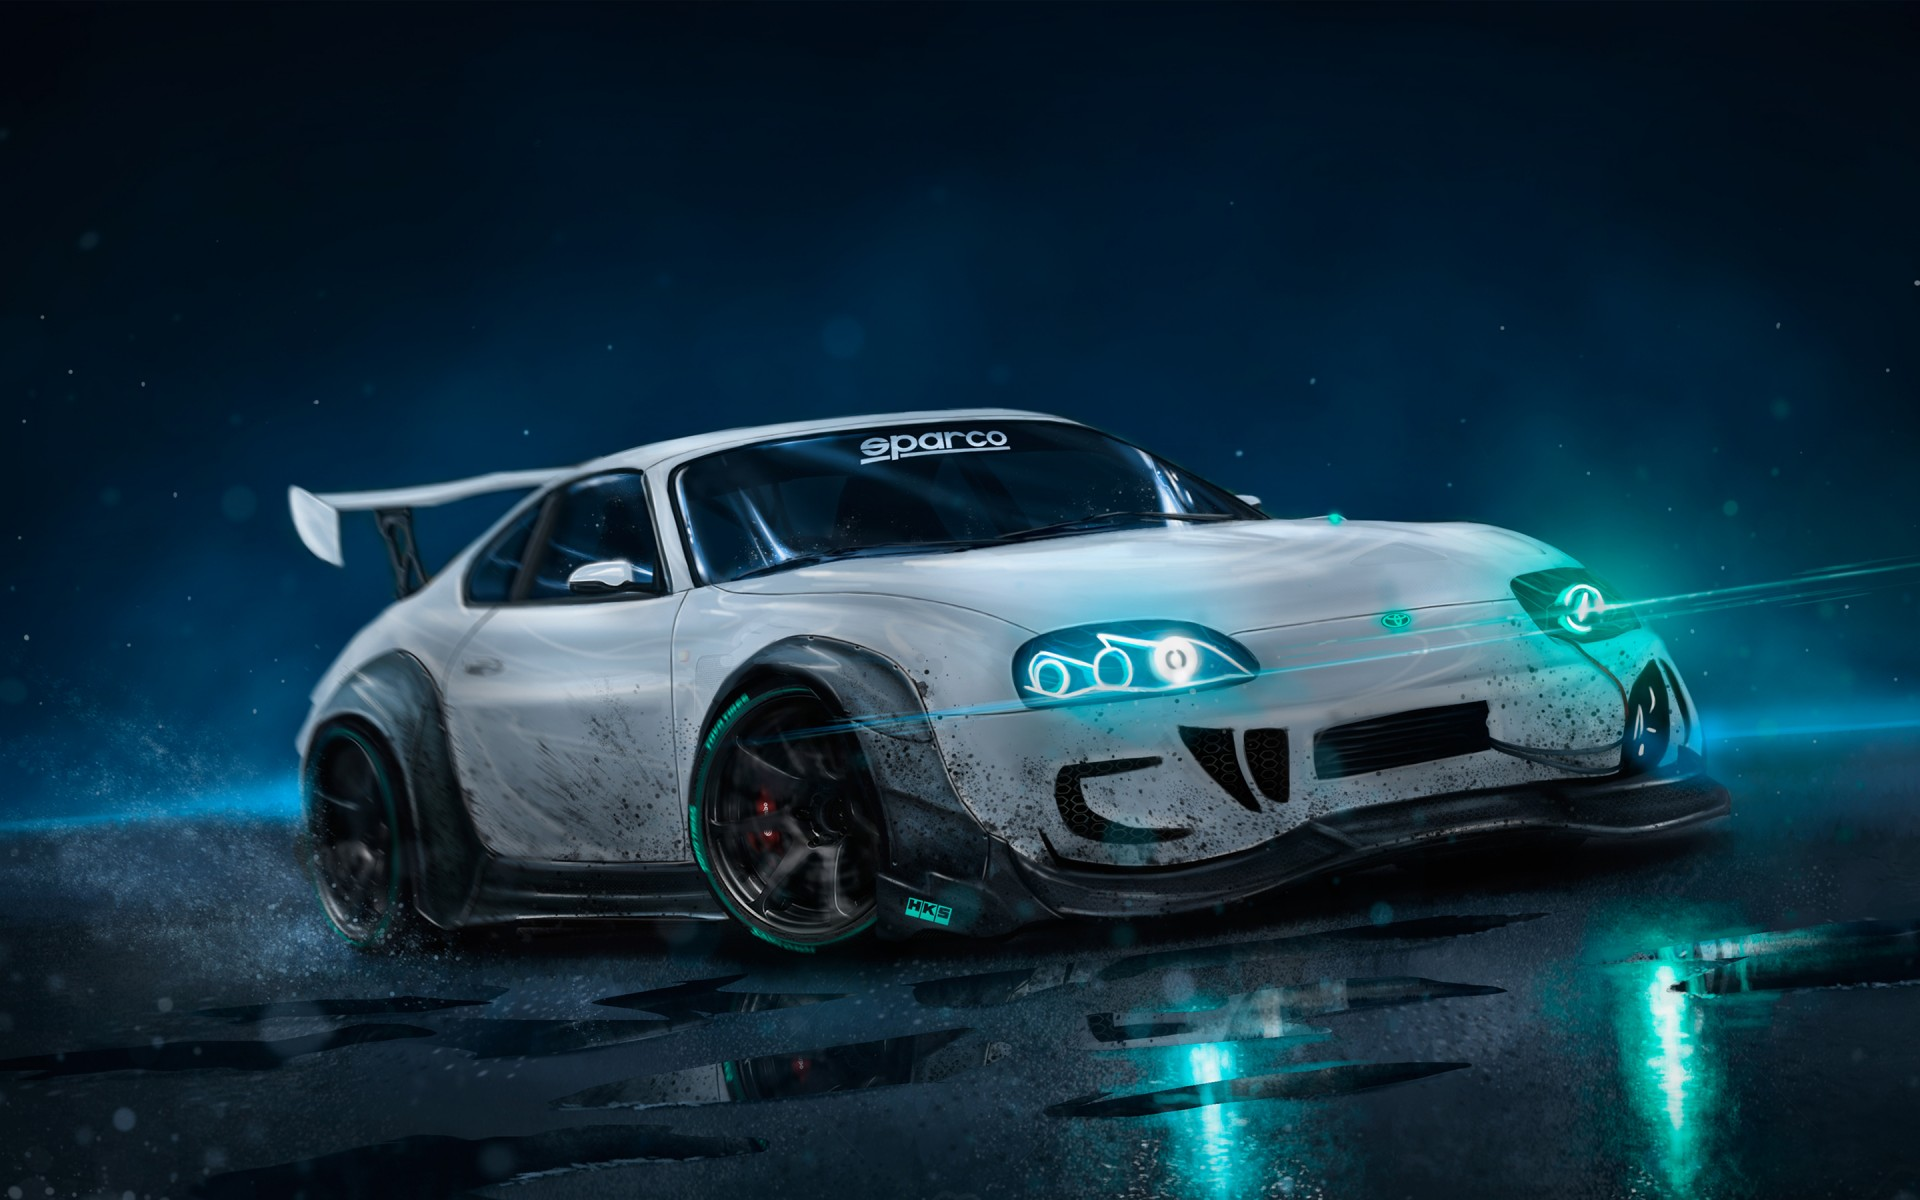 Car Hd Wallpaper For Iphone Toyota Supra Neon Lights 4k Wallpapers Hd Wallpapers